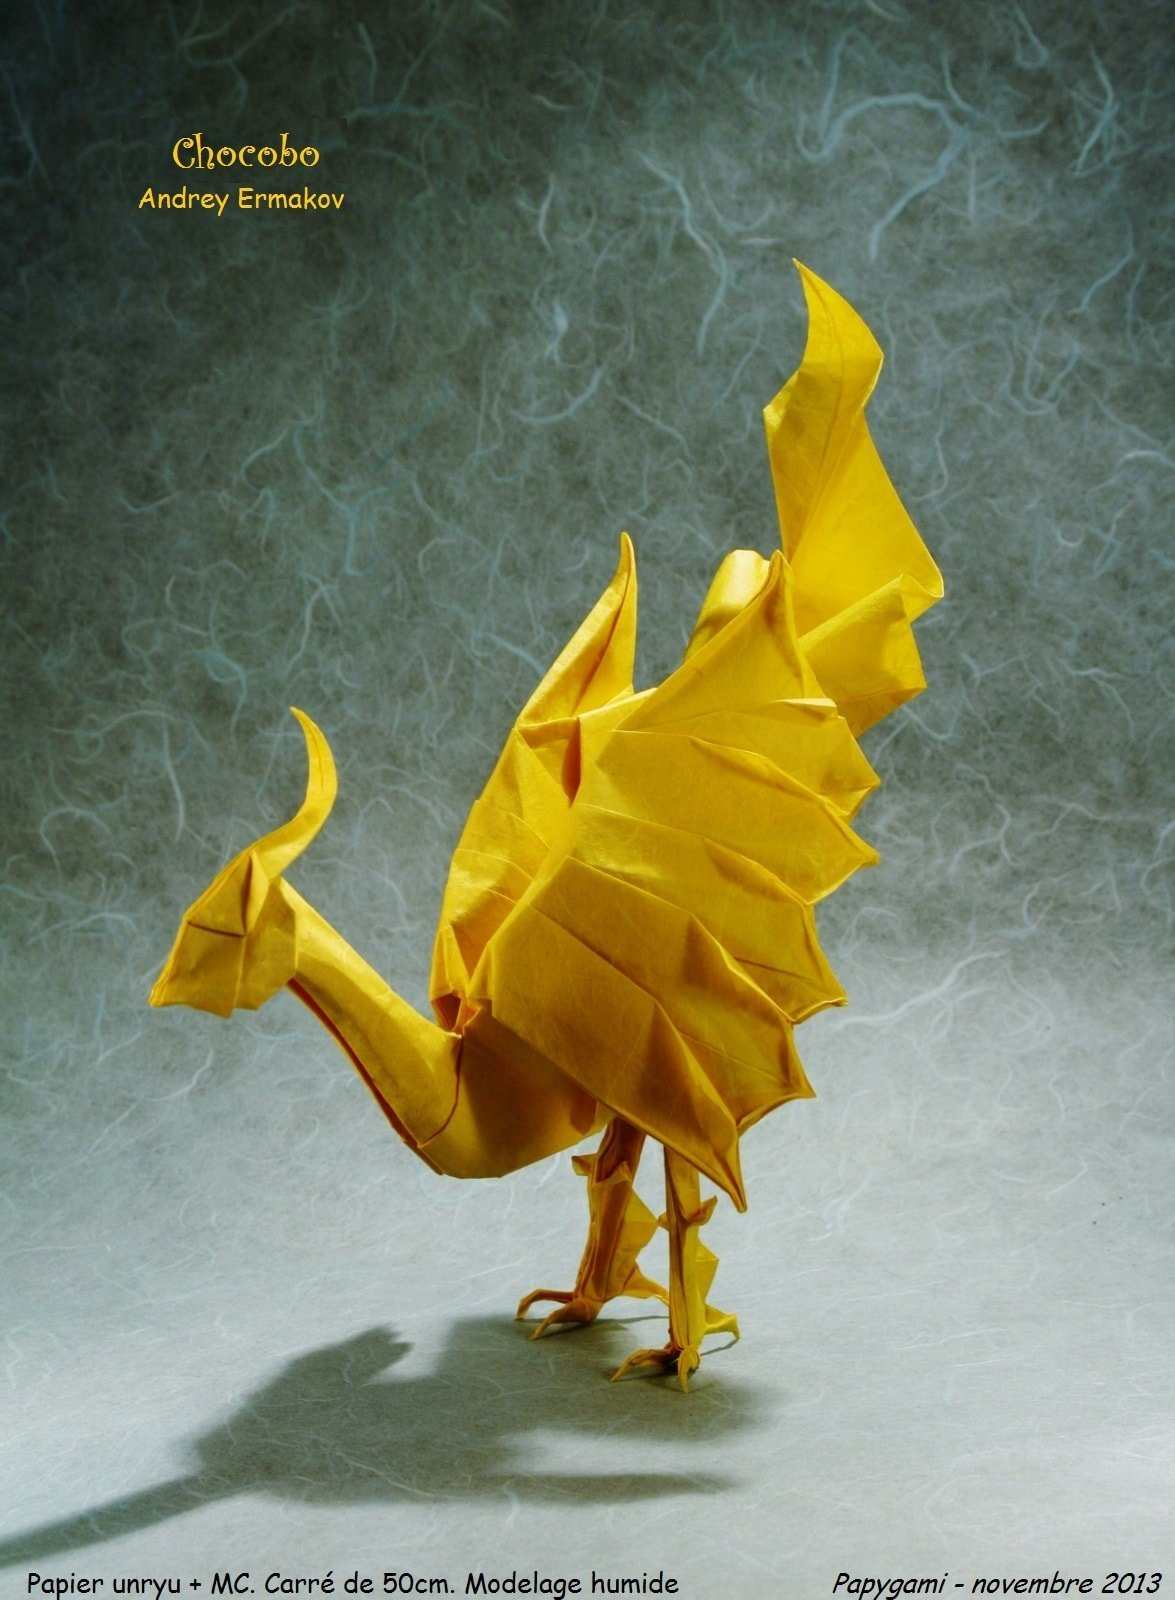 Chocobo from Final Fantasy